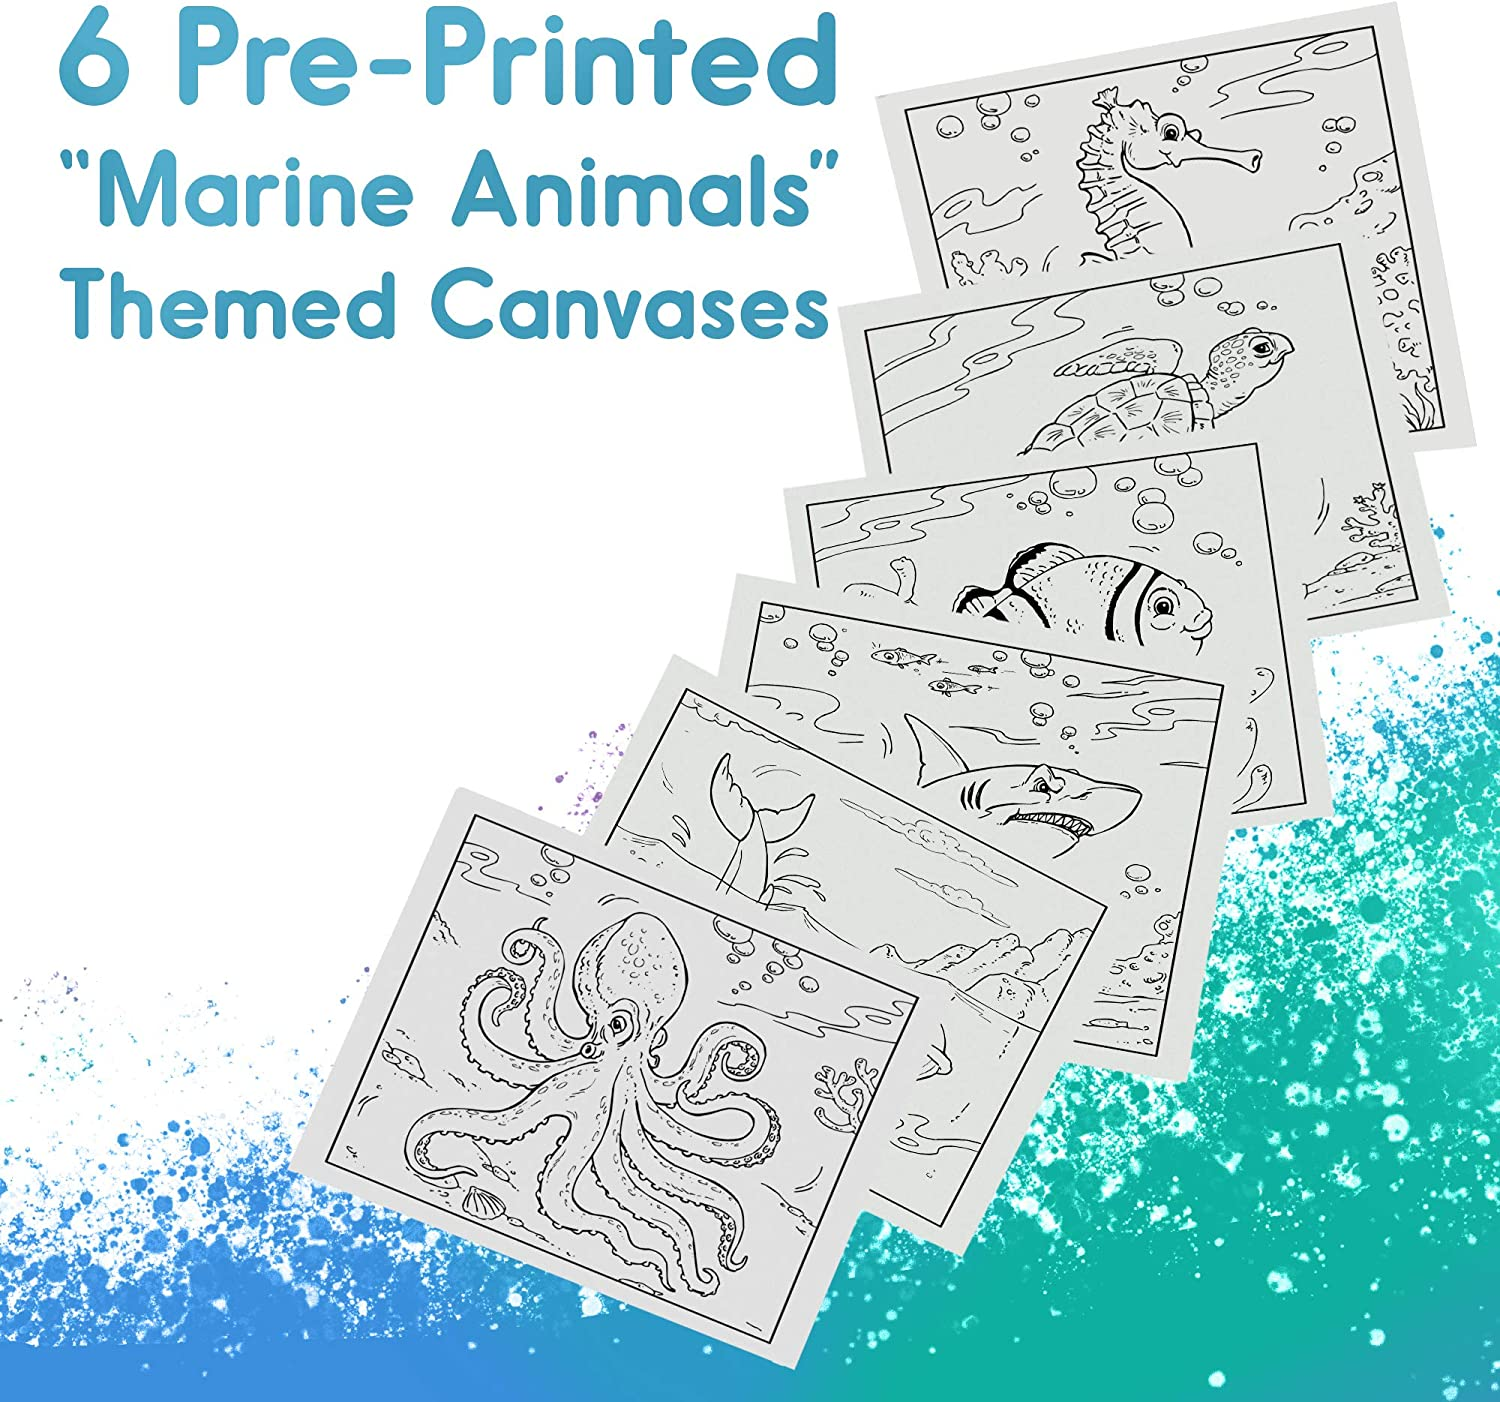 6 Canvas Set FyneArt 100 Percent Cotton and Acid Free Canvases Primed 6 Princess Party Themed Pre-Sketched Panels 8x10 inches Canvas for Painting with Stencil Drawings for Artist Kids +6yrs